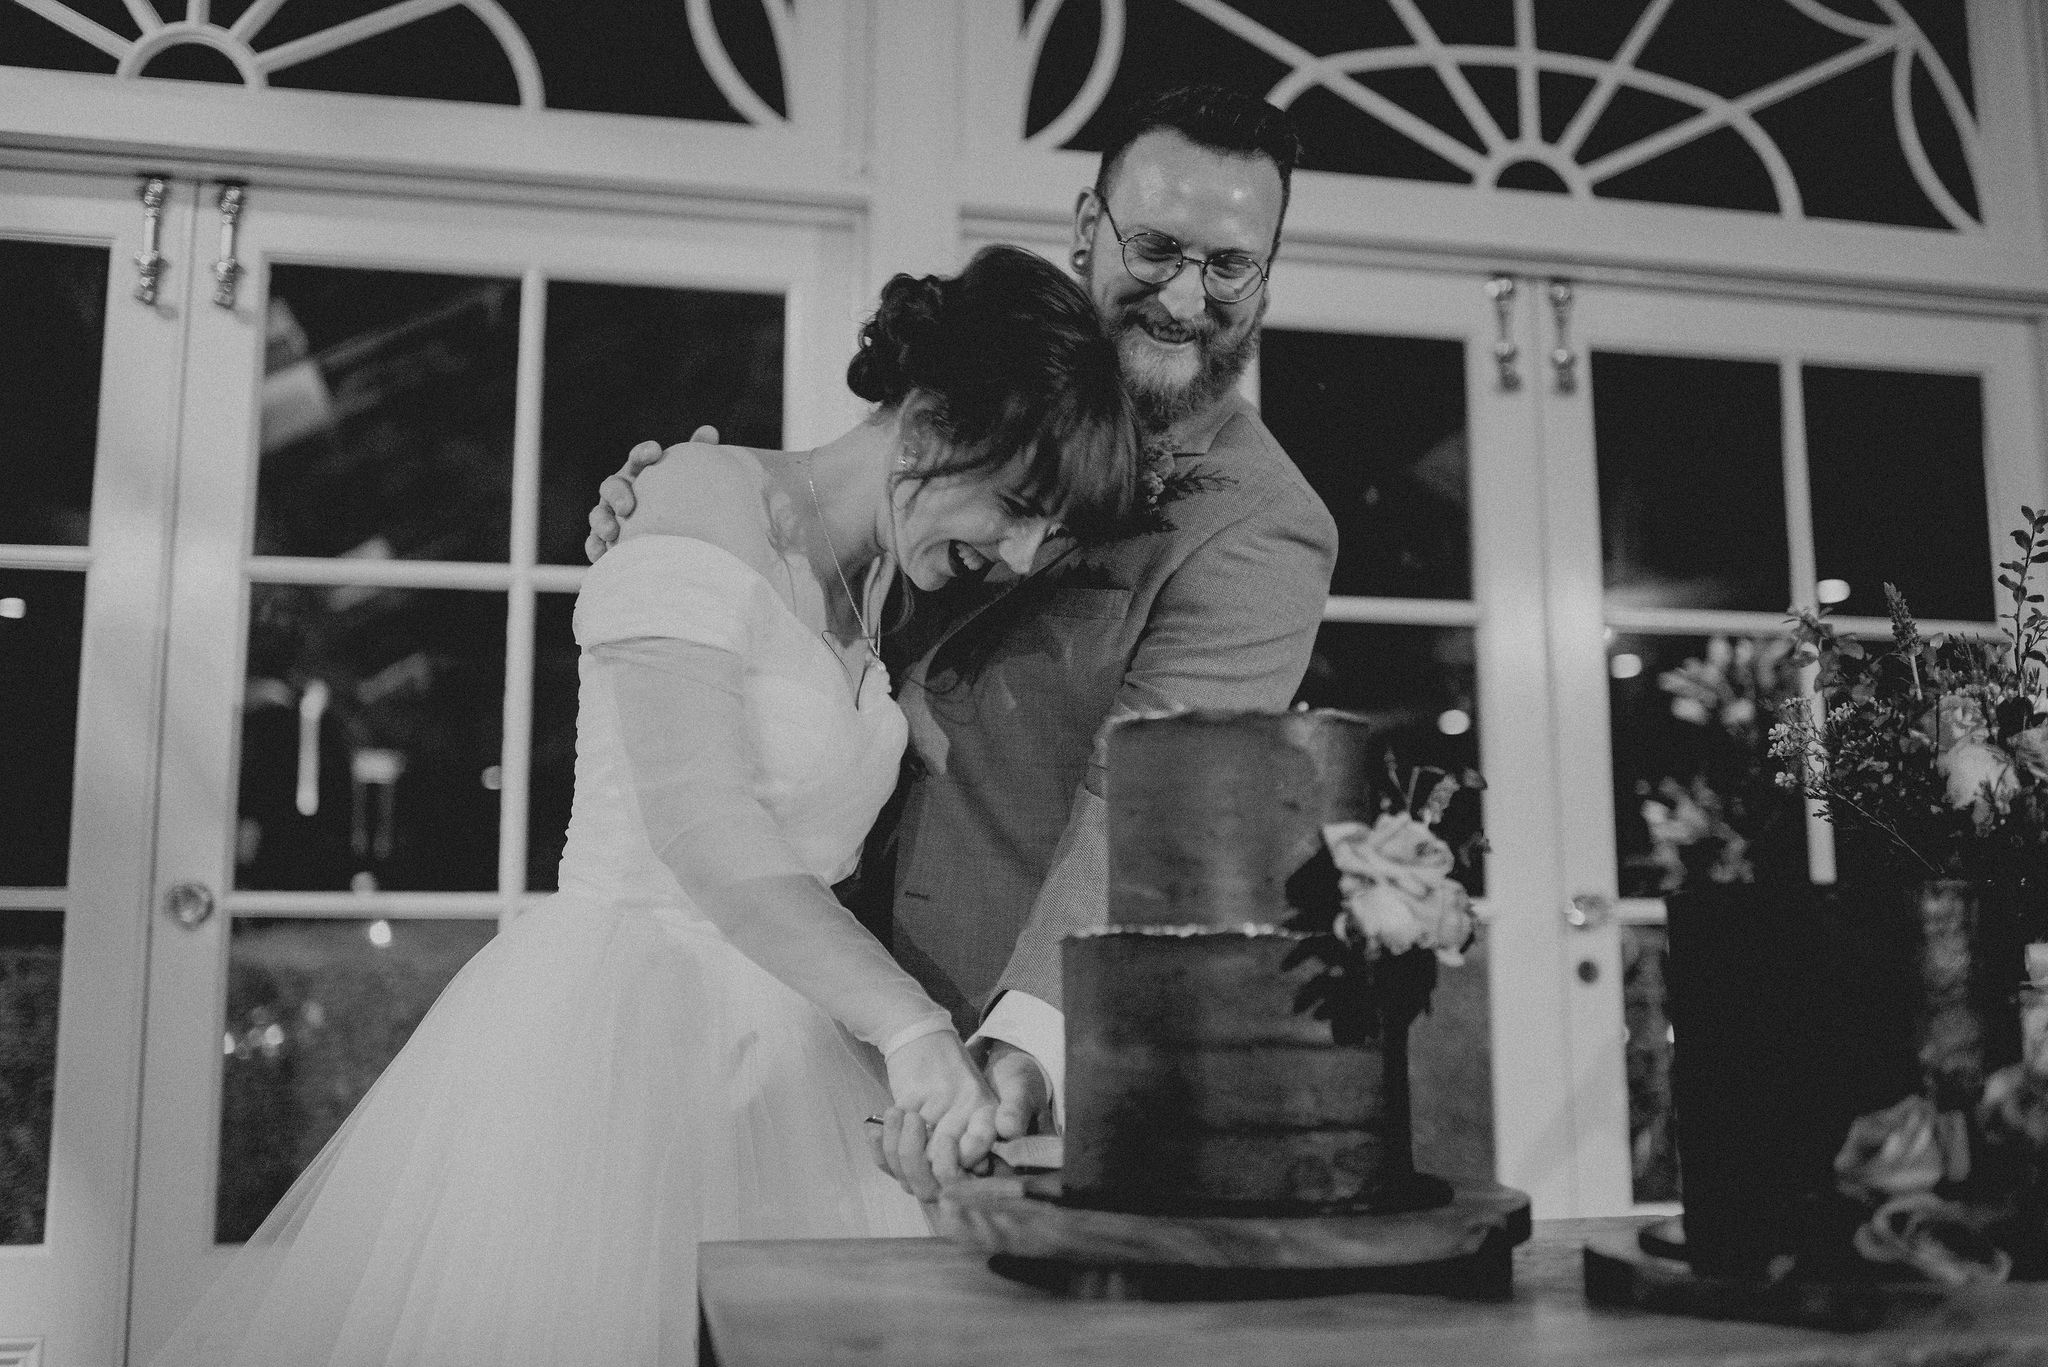 Bride and groom laugh as they cut wedding cake together